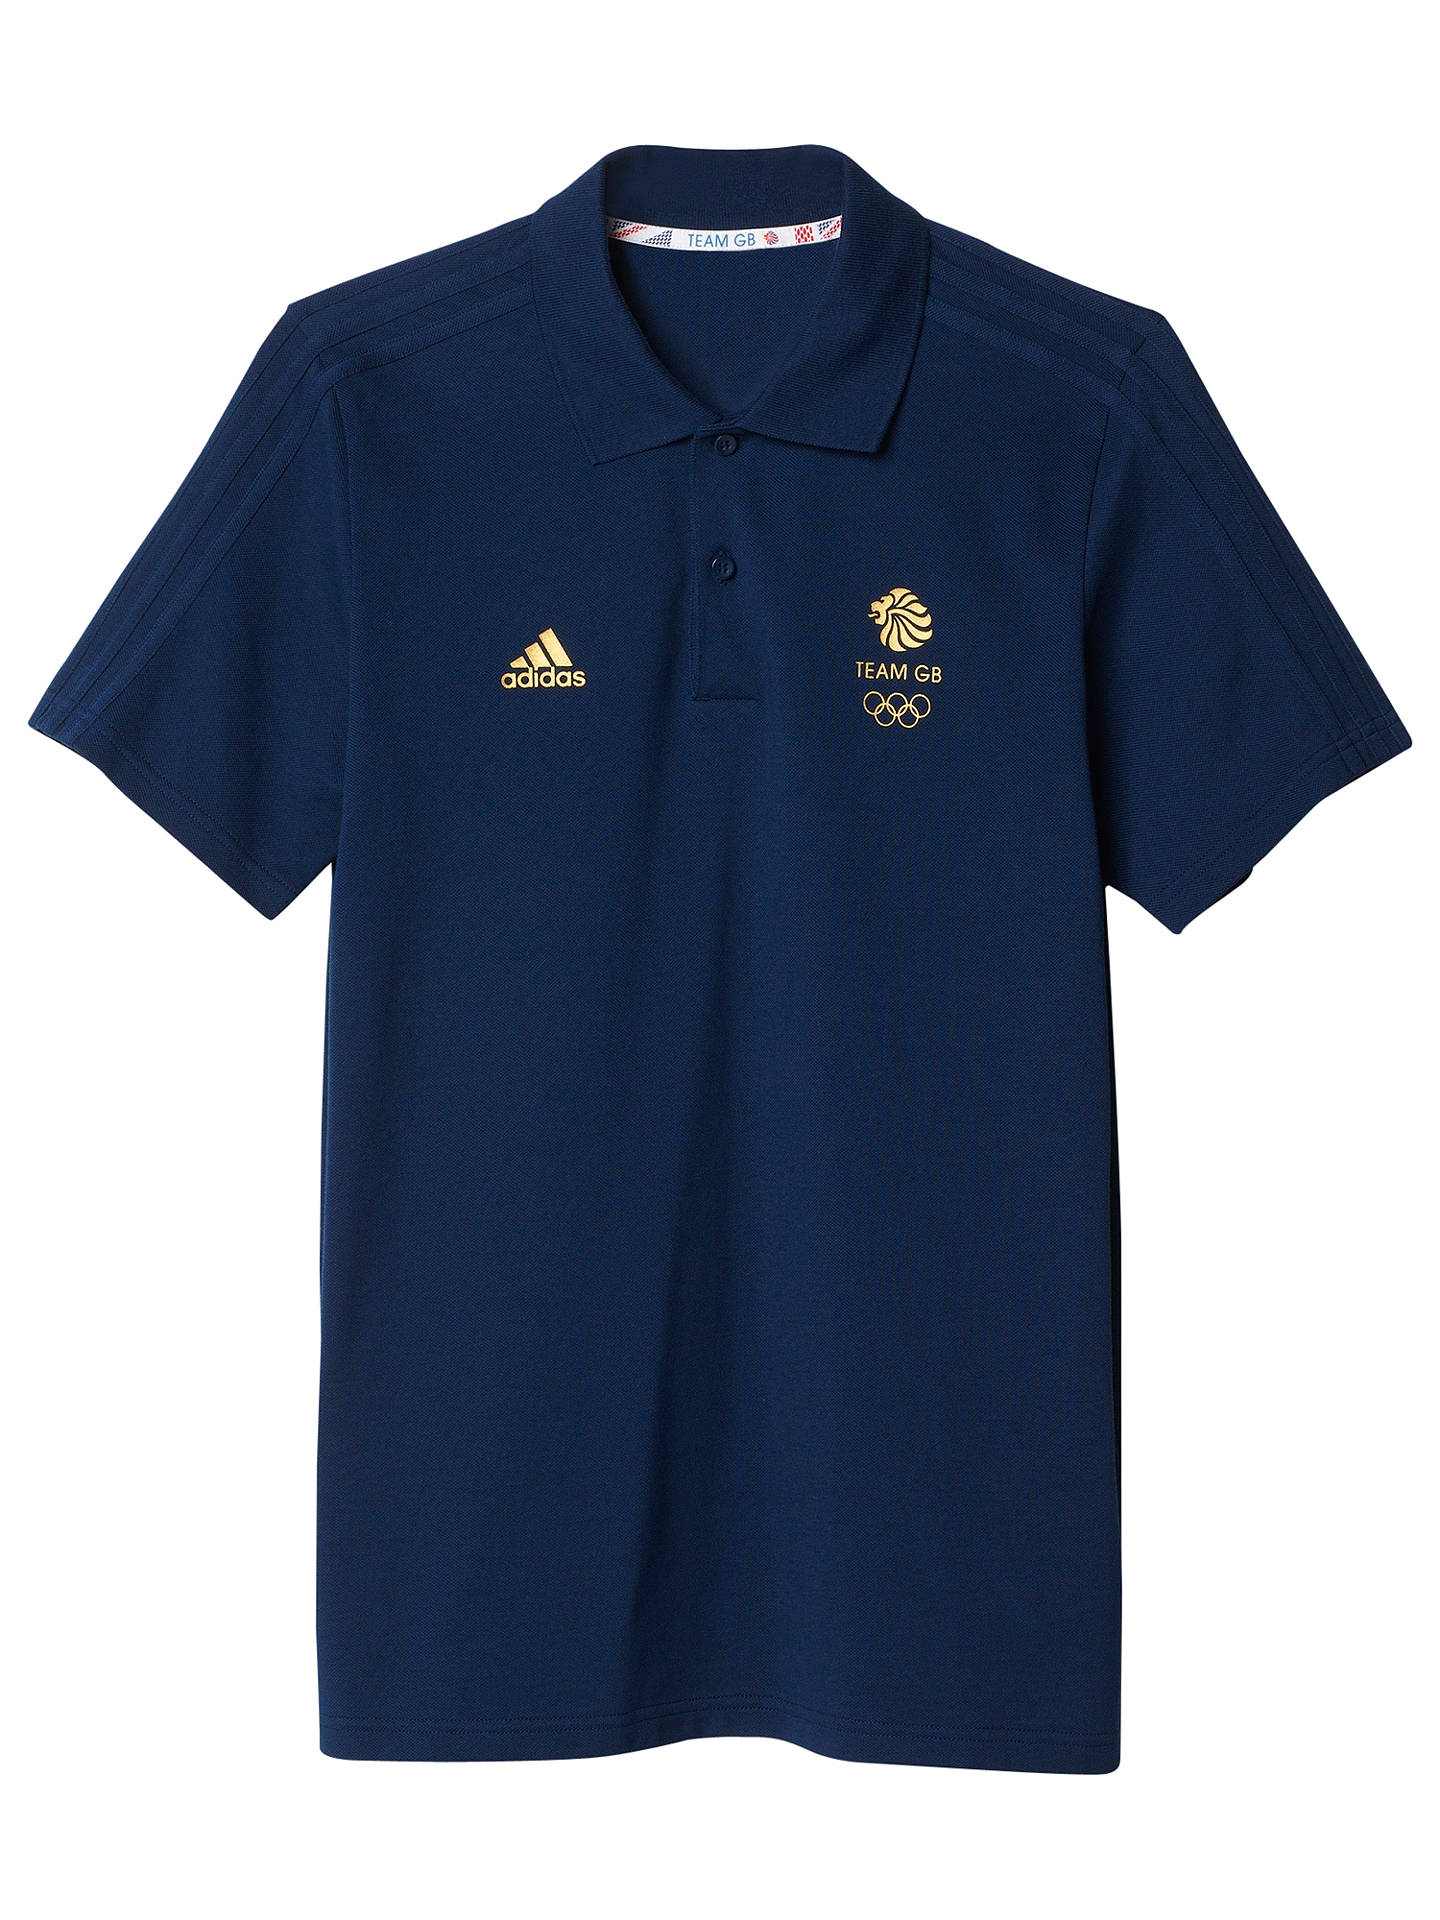 da35ed5dc Buy Adidas Team GB Men's Polo Shirt, Navy/Gold, S Online at johnlewis ...